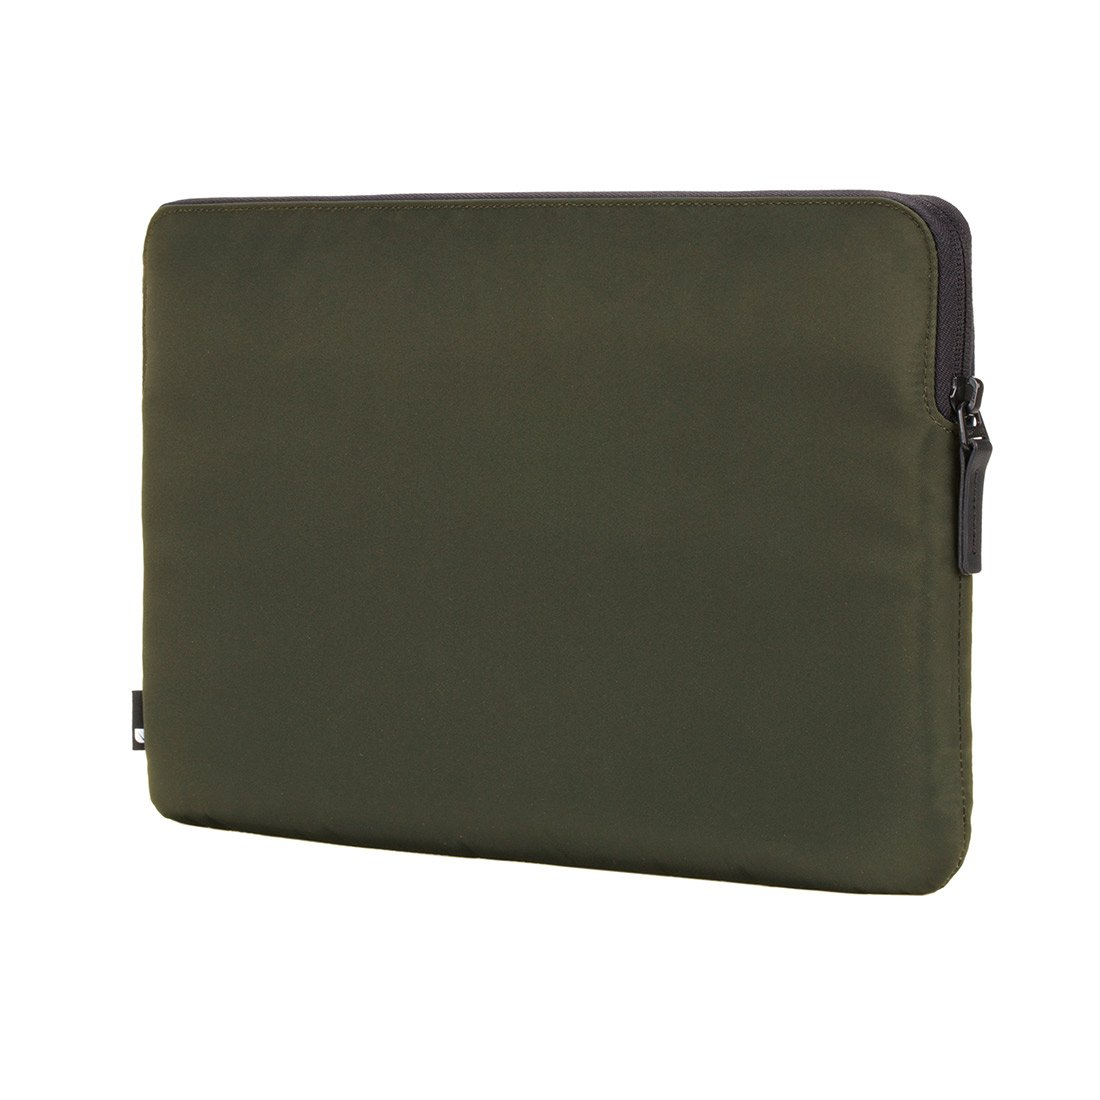 the latest b4691 cd374 Incase Compact Sleeve in Flight Nylon for MacBook Pro 15